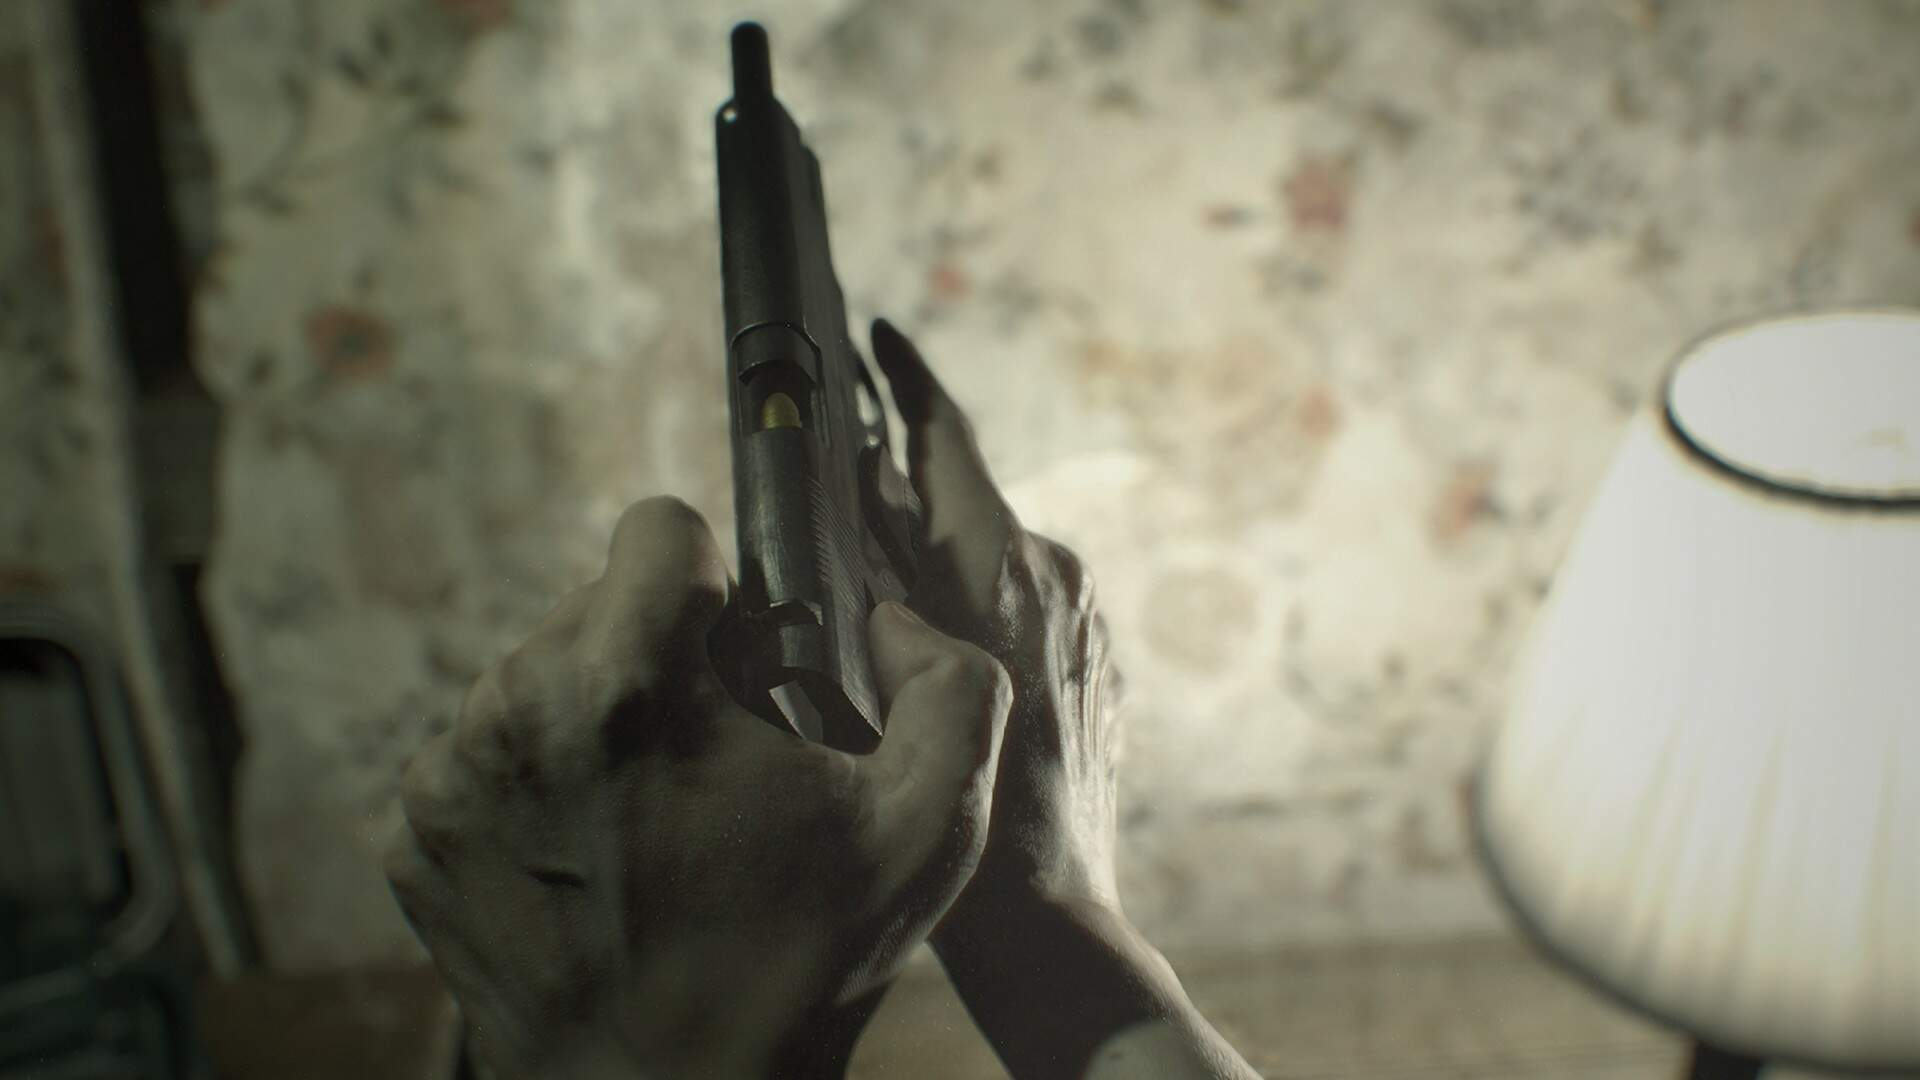 Resident Evil 7 Guide: How to Find and Use Repair Kits - Fix the M19 Pistol and M21 Shotgun